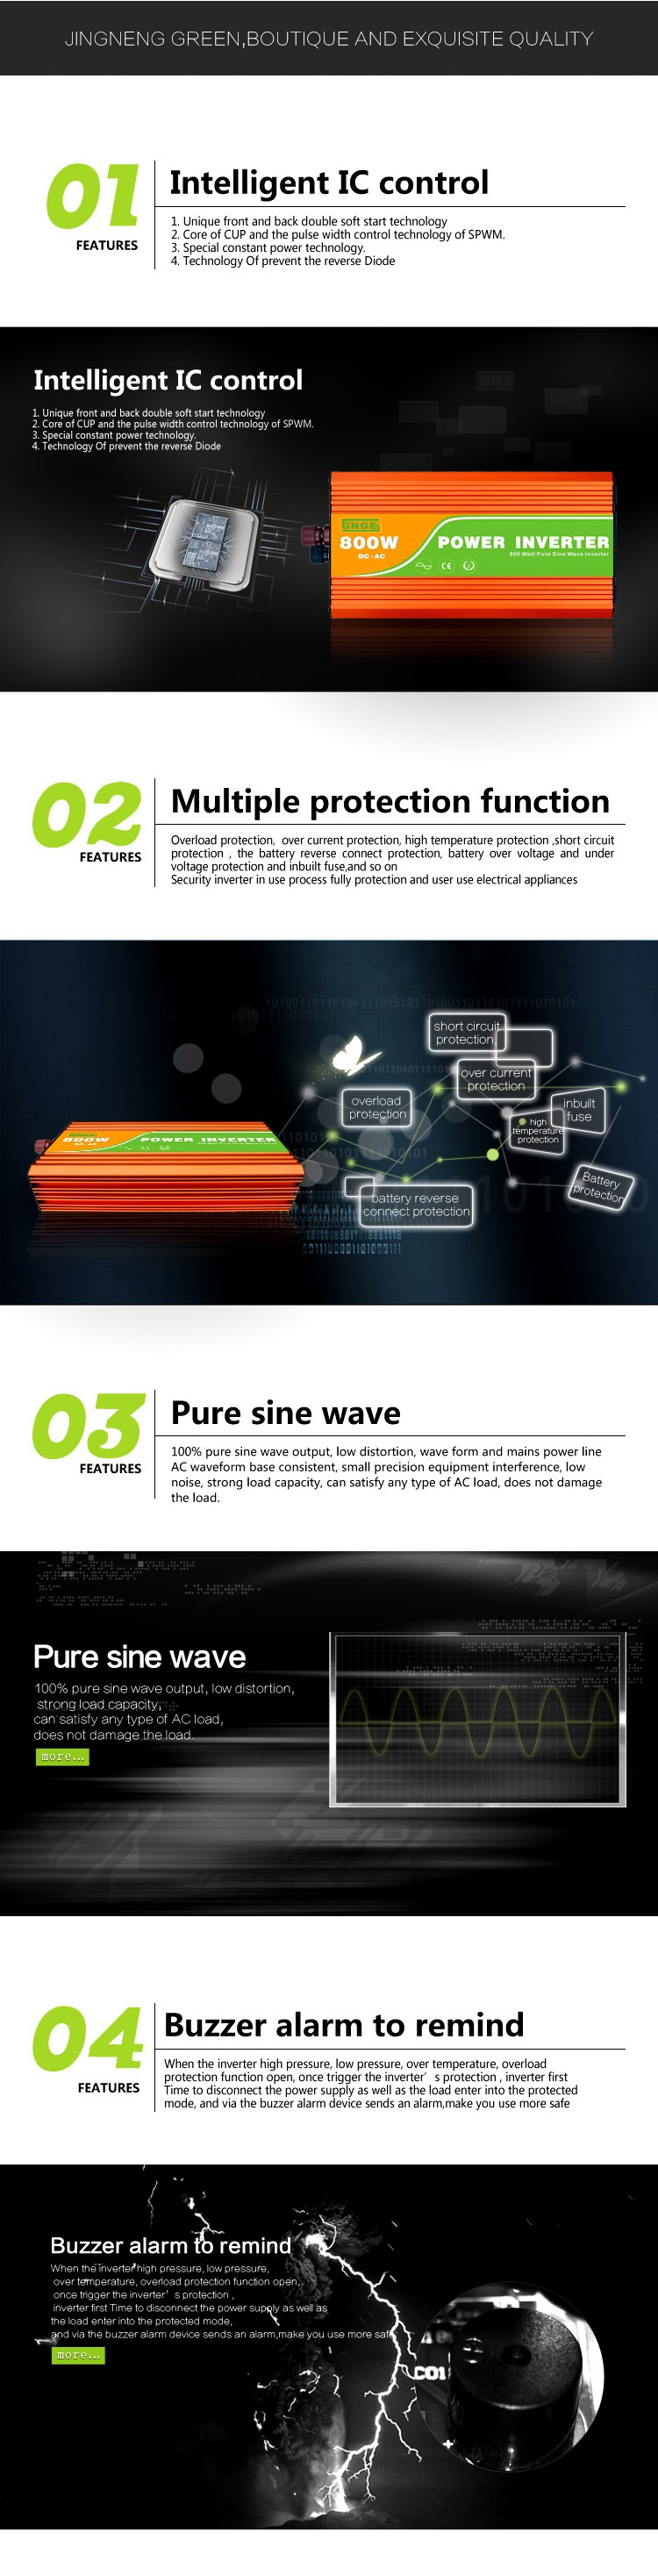 24v 800w High Frequency Pure Sine Wave off-grid solar inverter JN-H Series